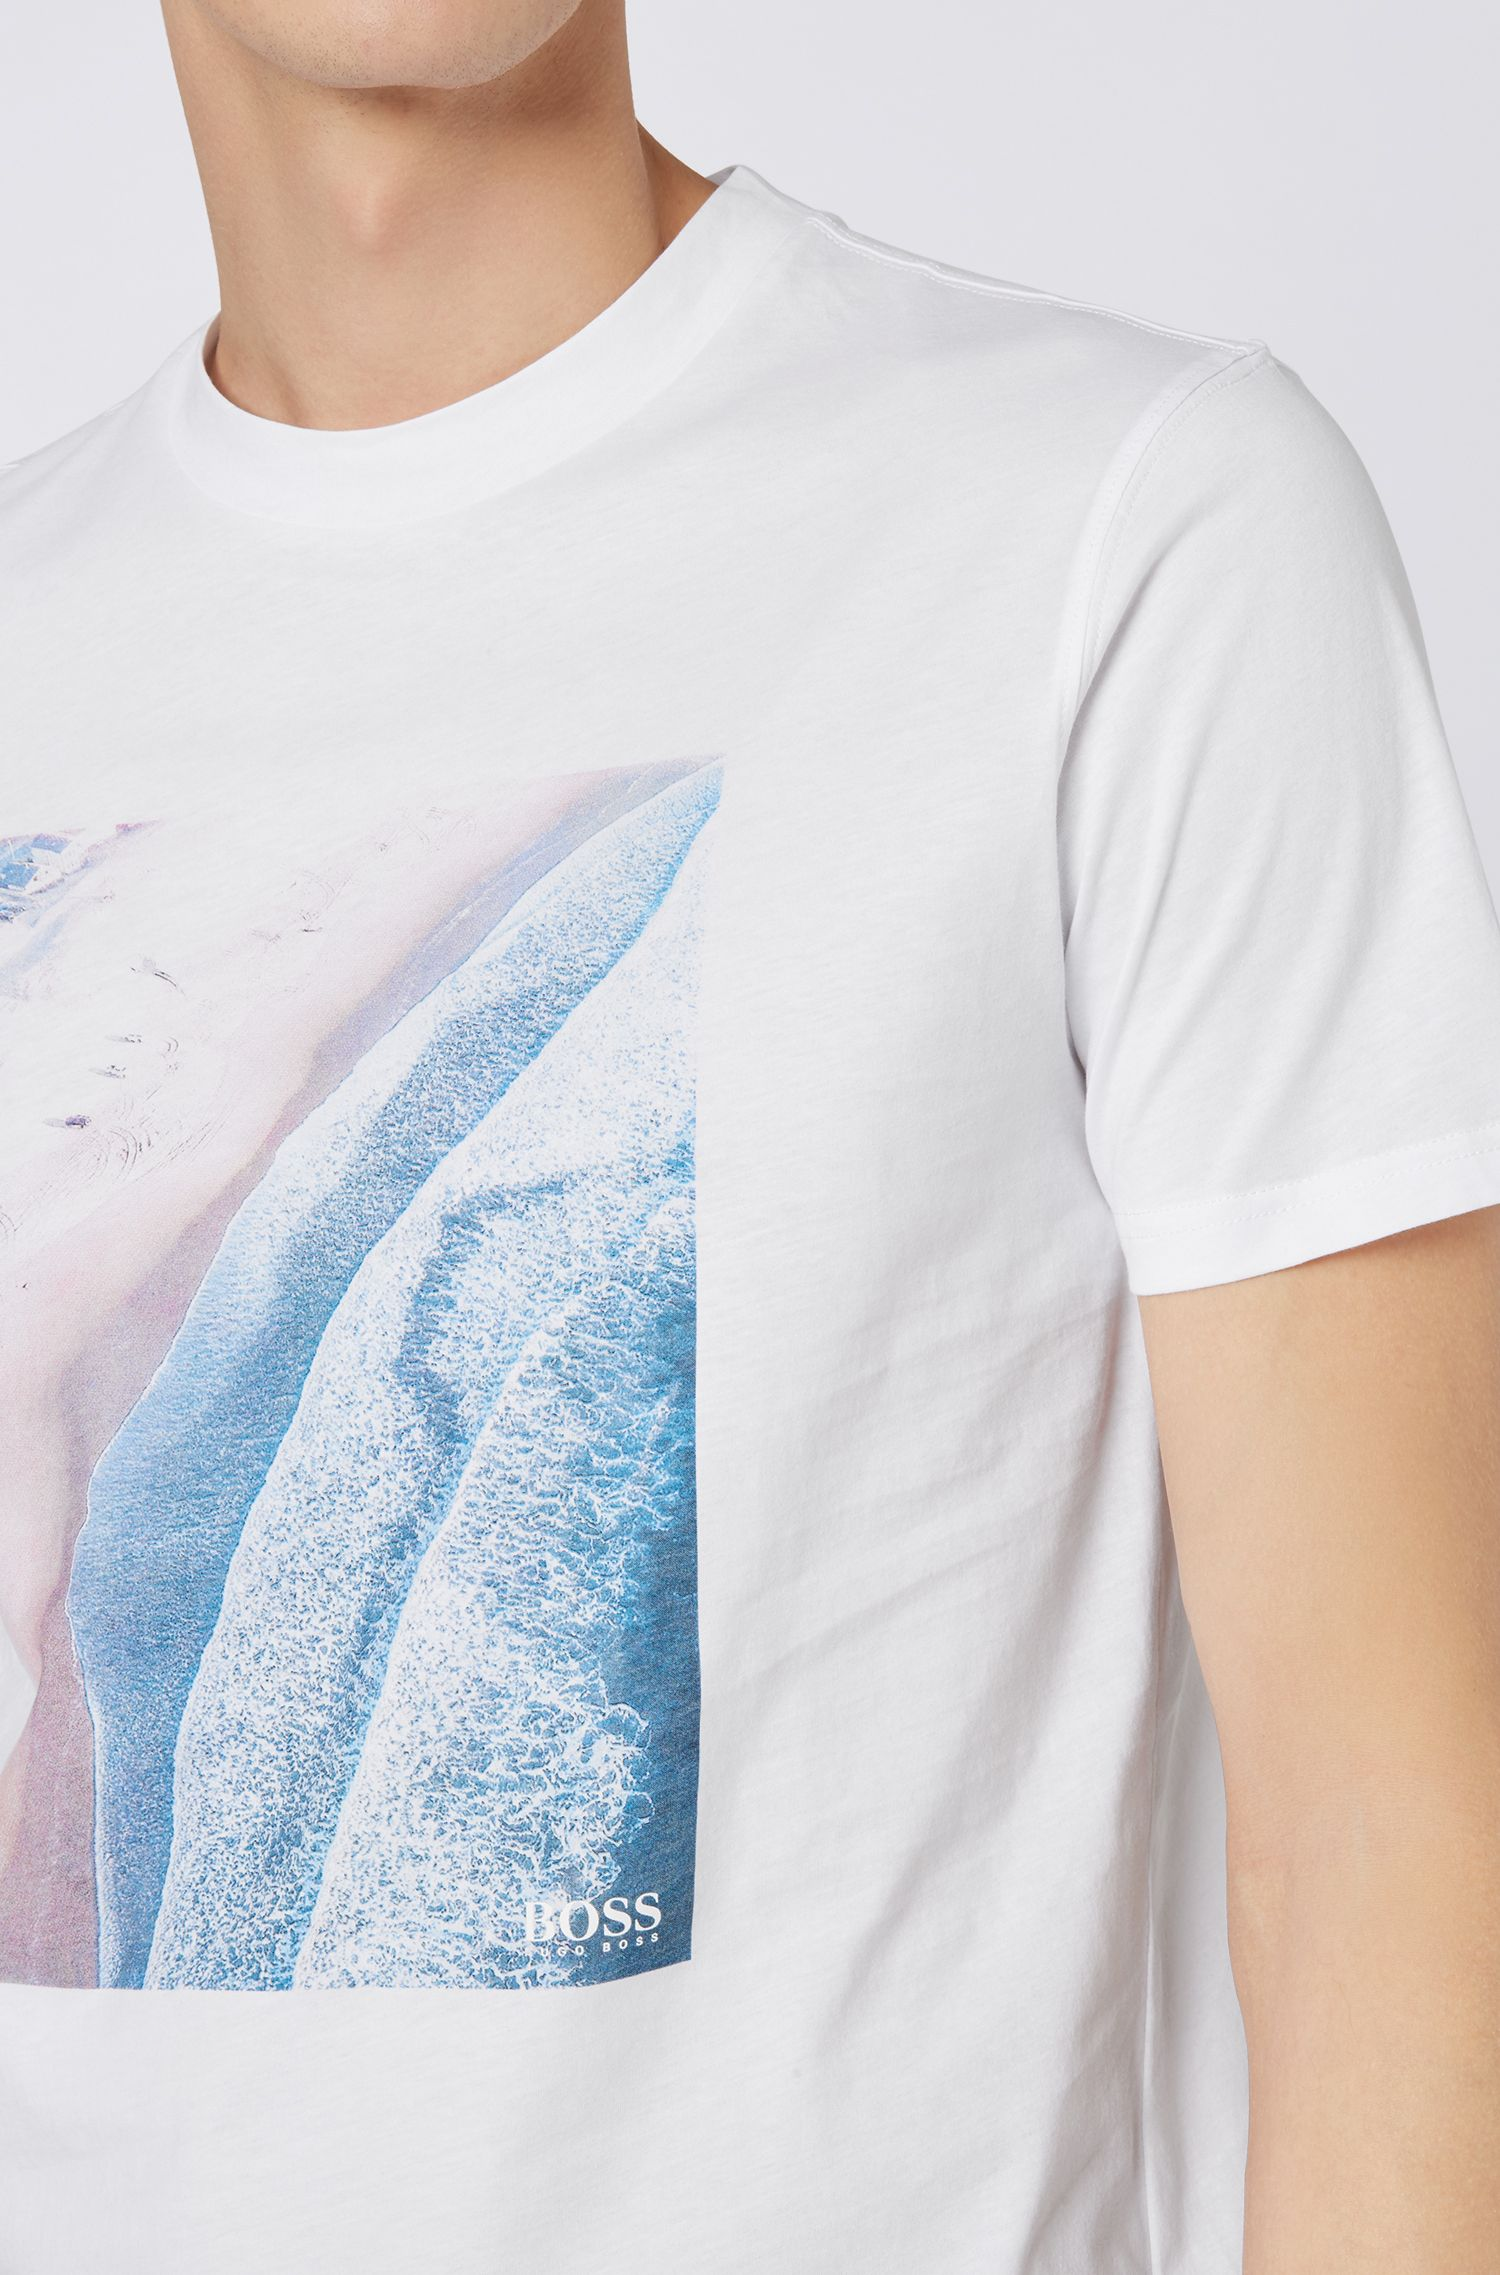 Relaxed-fit T-shirt with cracked-effect graphic print, White